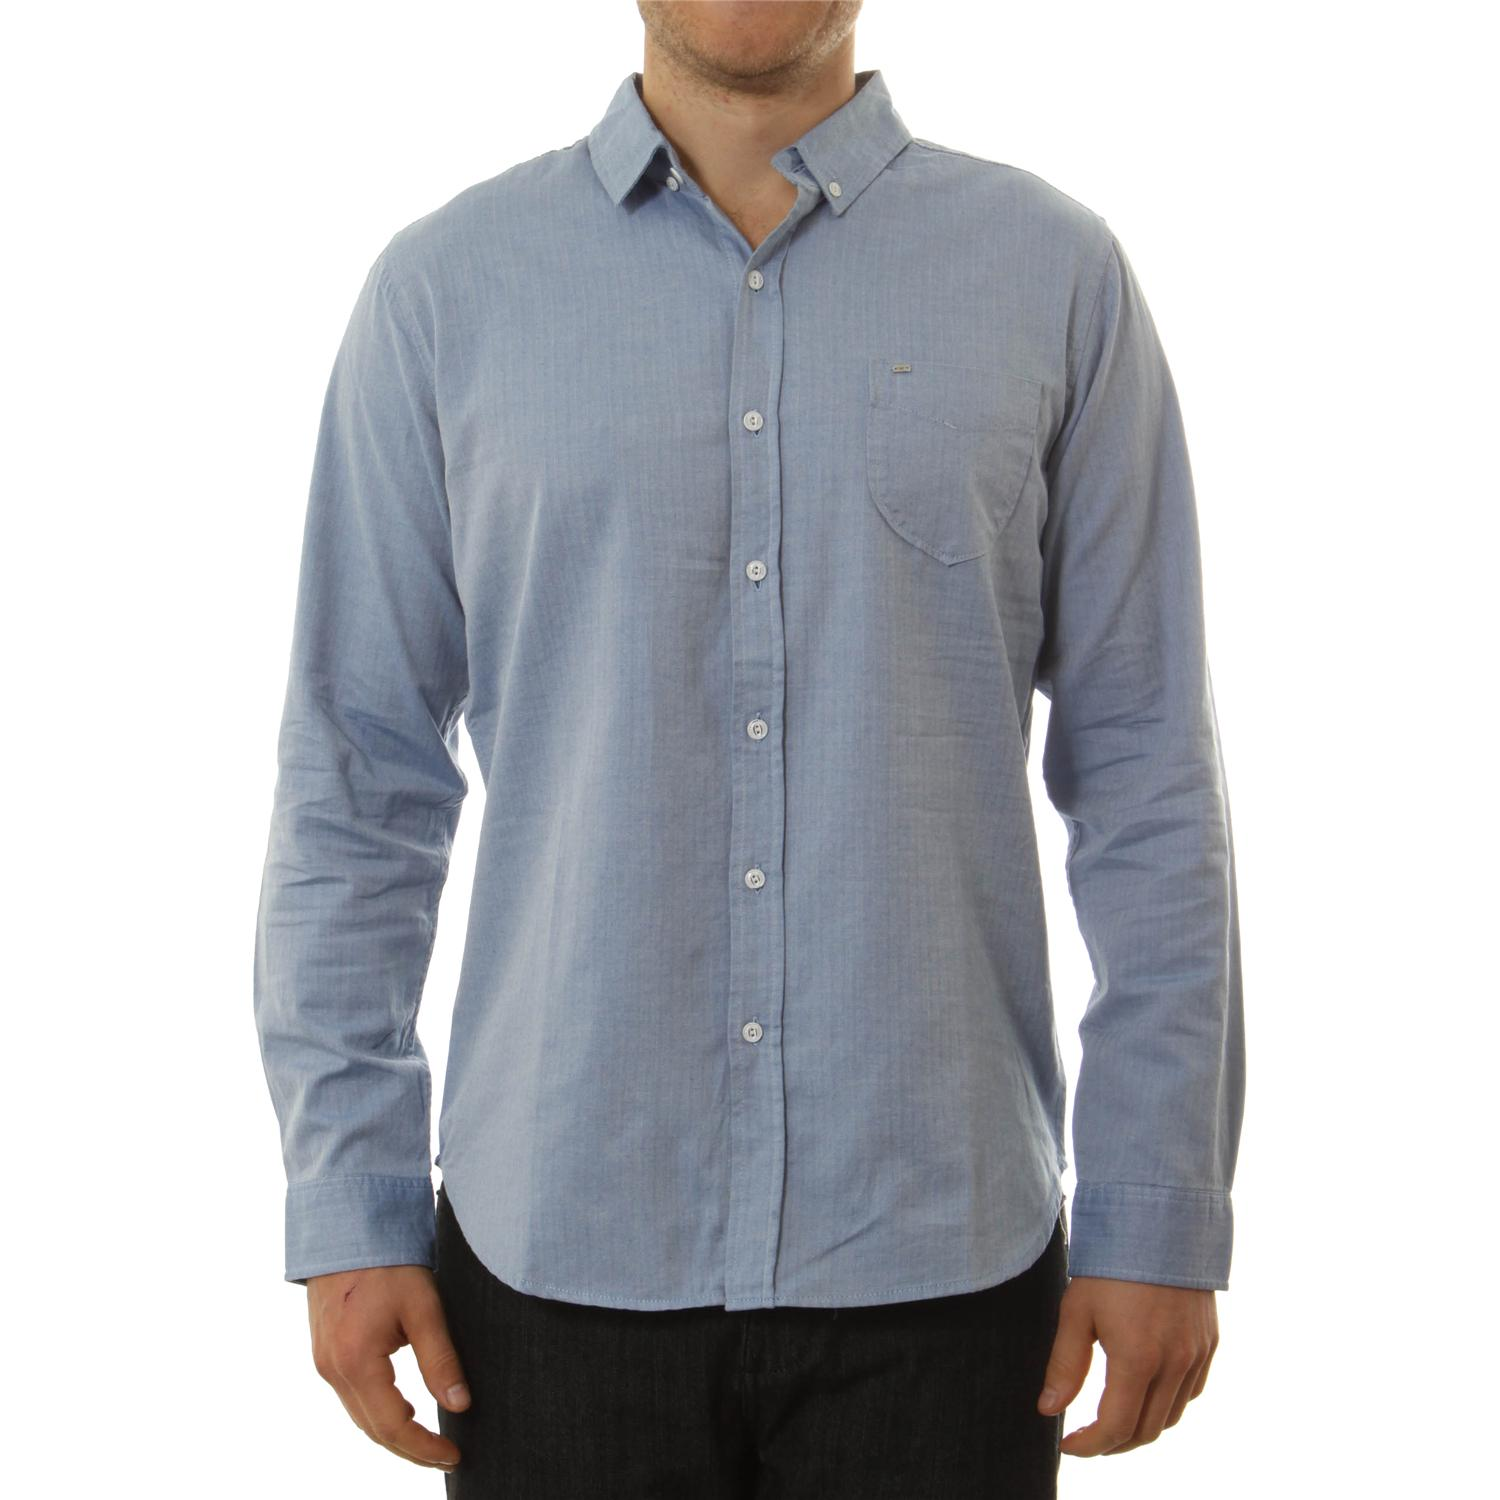 Obey Clothing Staple Woven Button Down Shirt